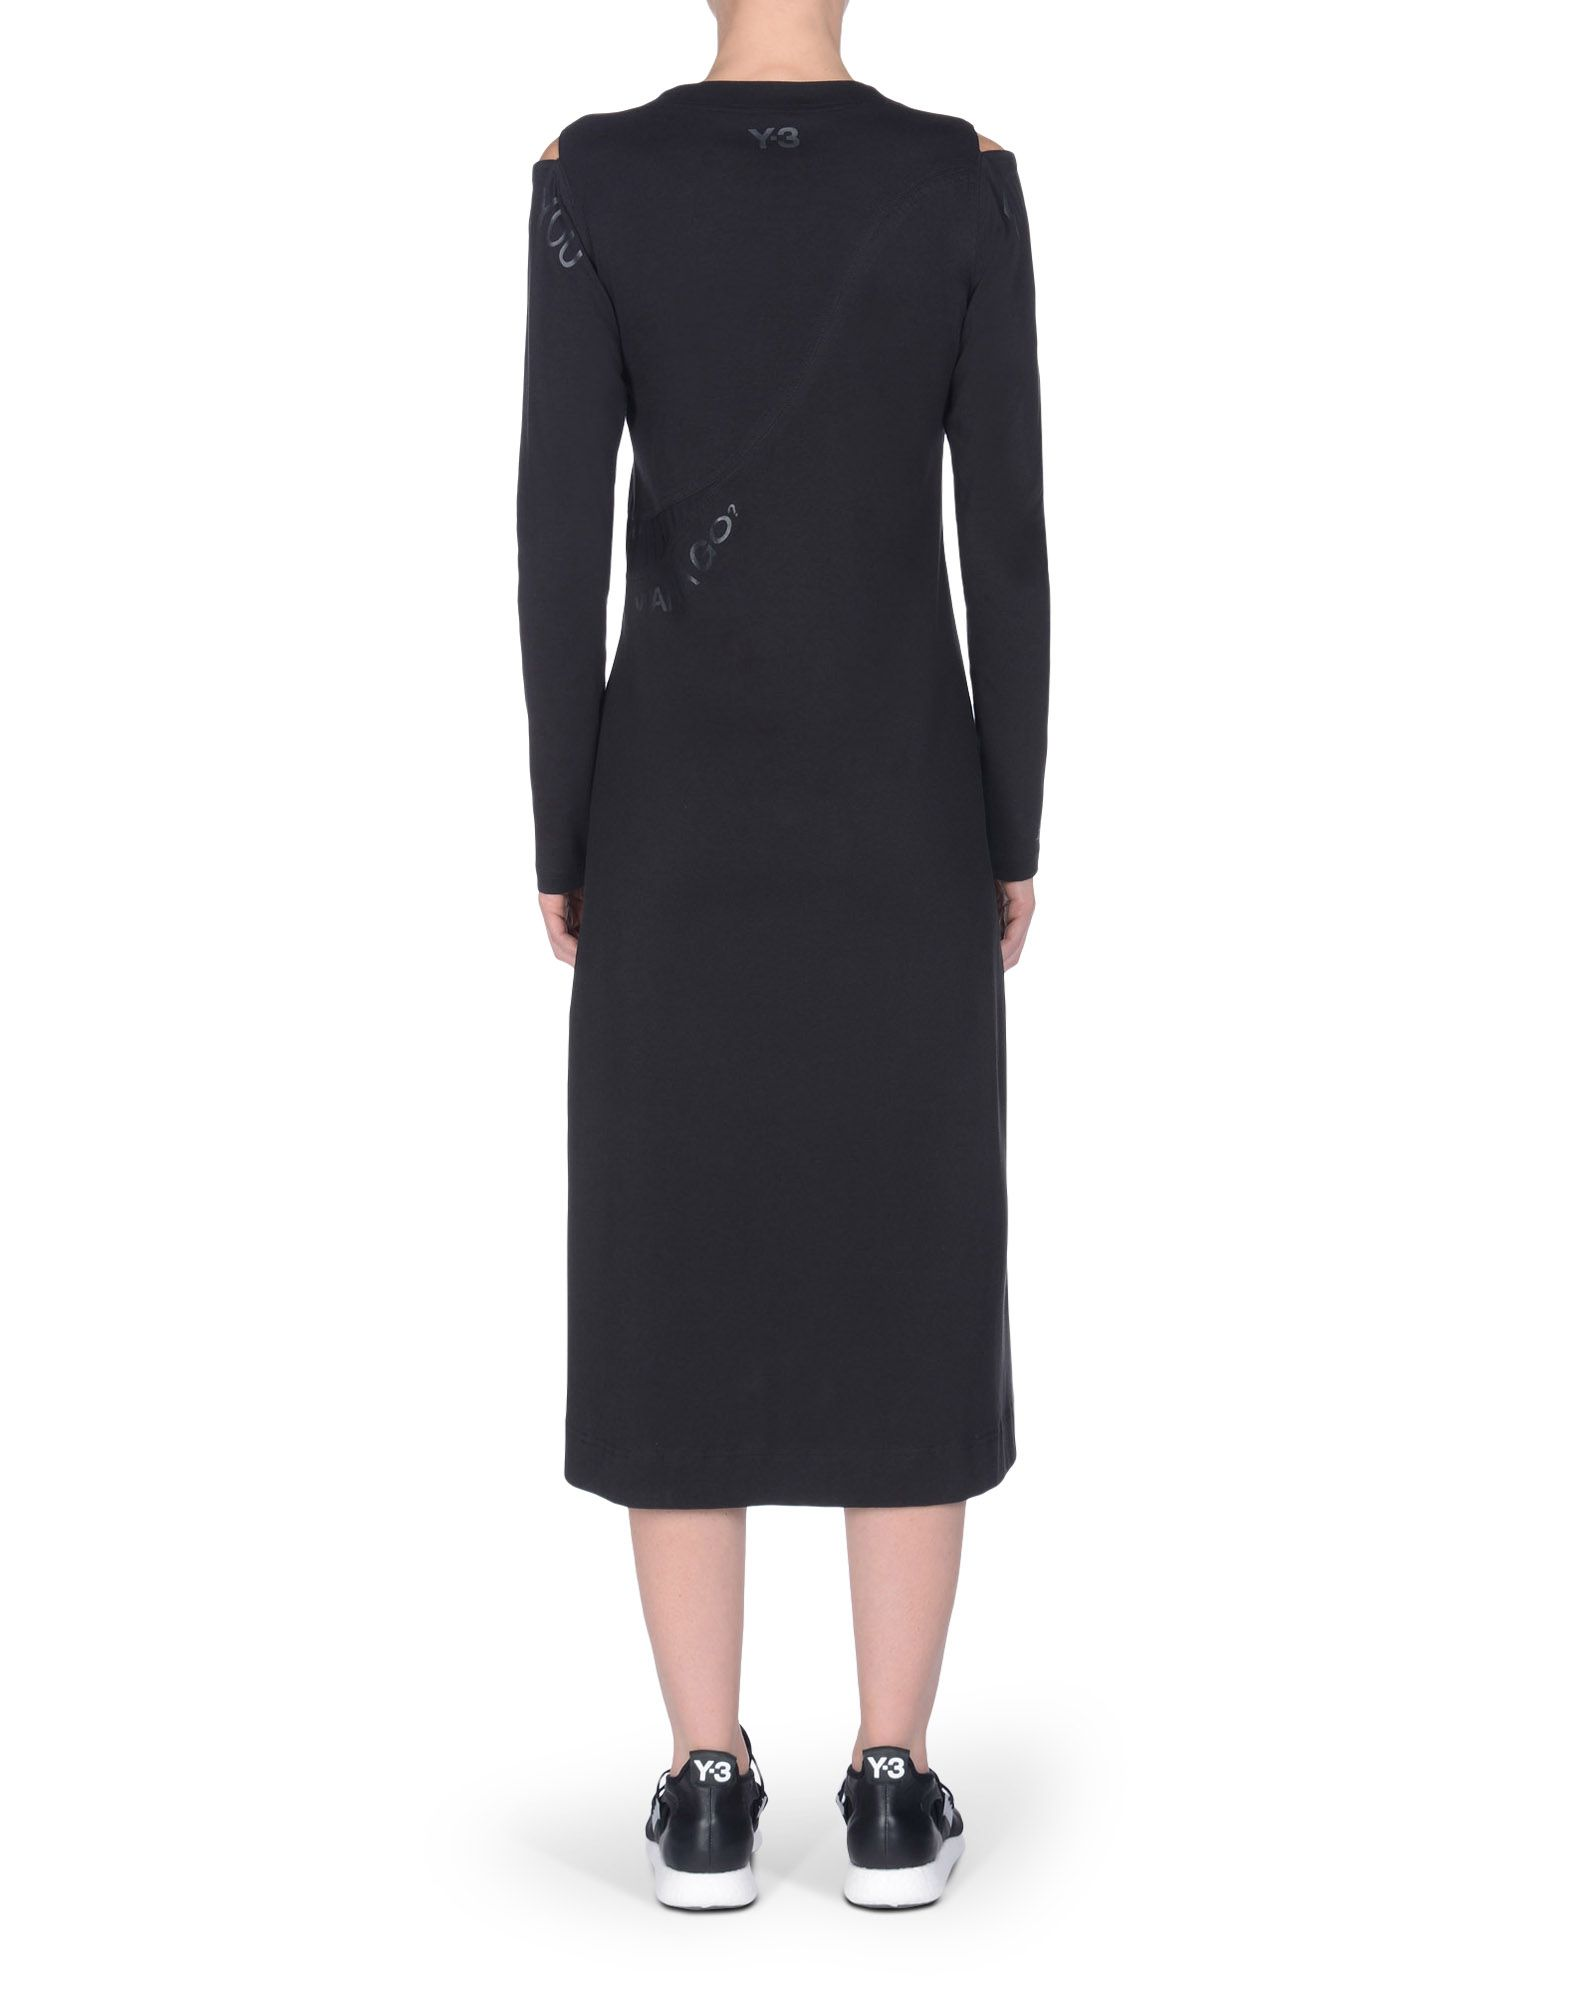 Y-3 STATEMENT DRESS DRESSES & SKIRTS woman Y-3 adidas